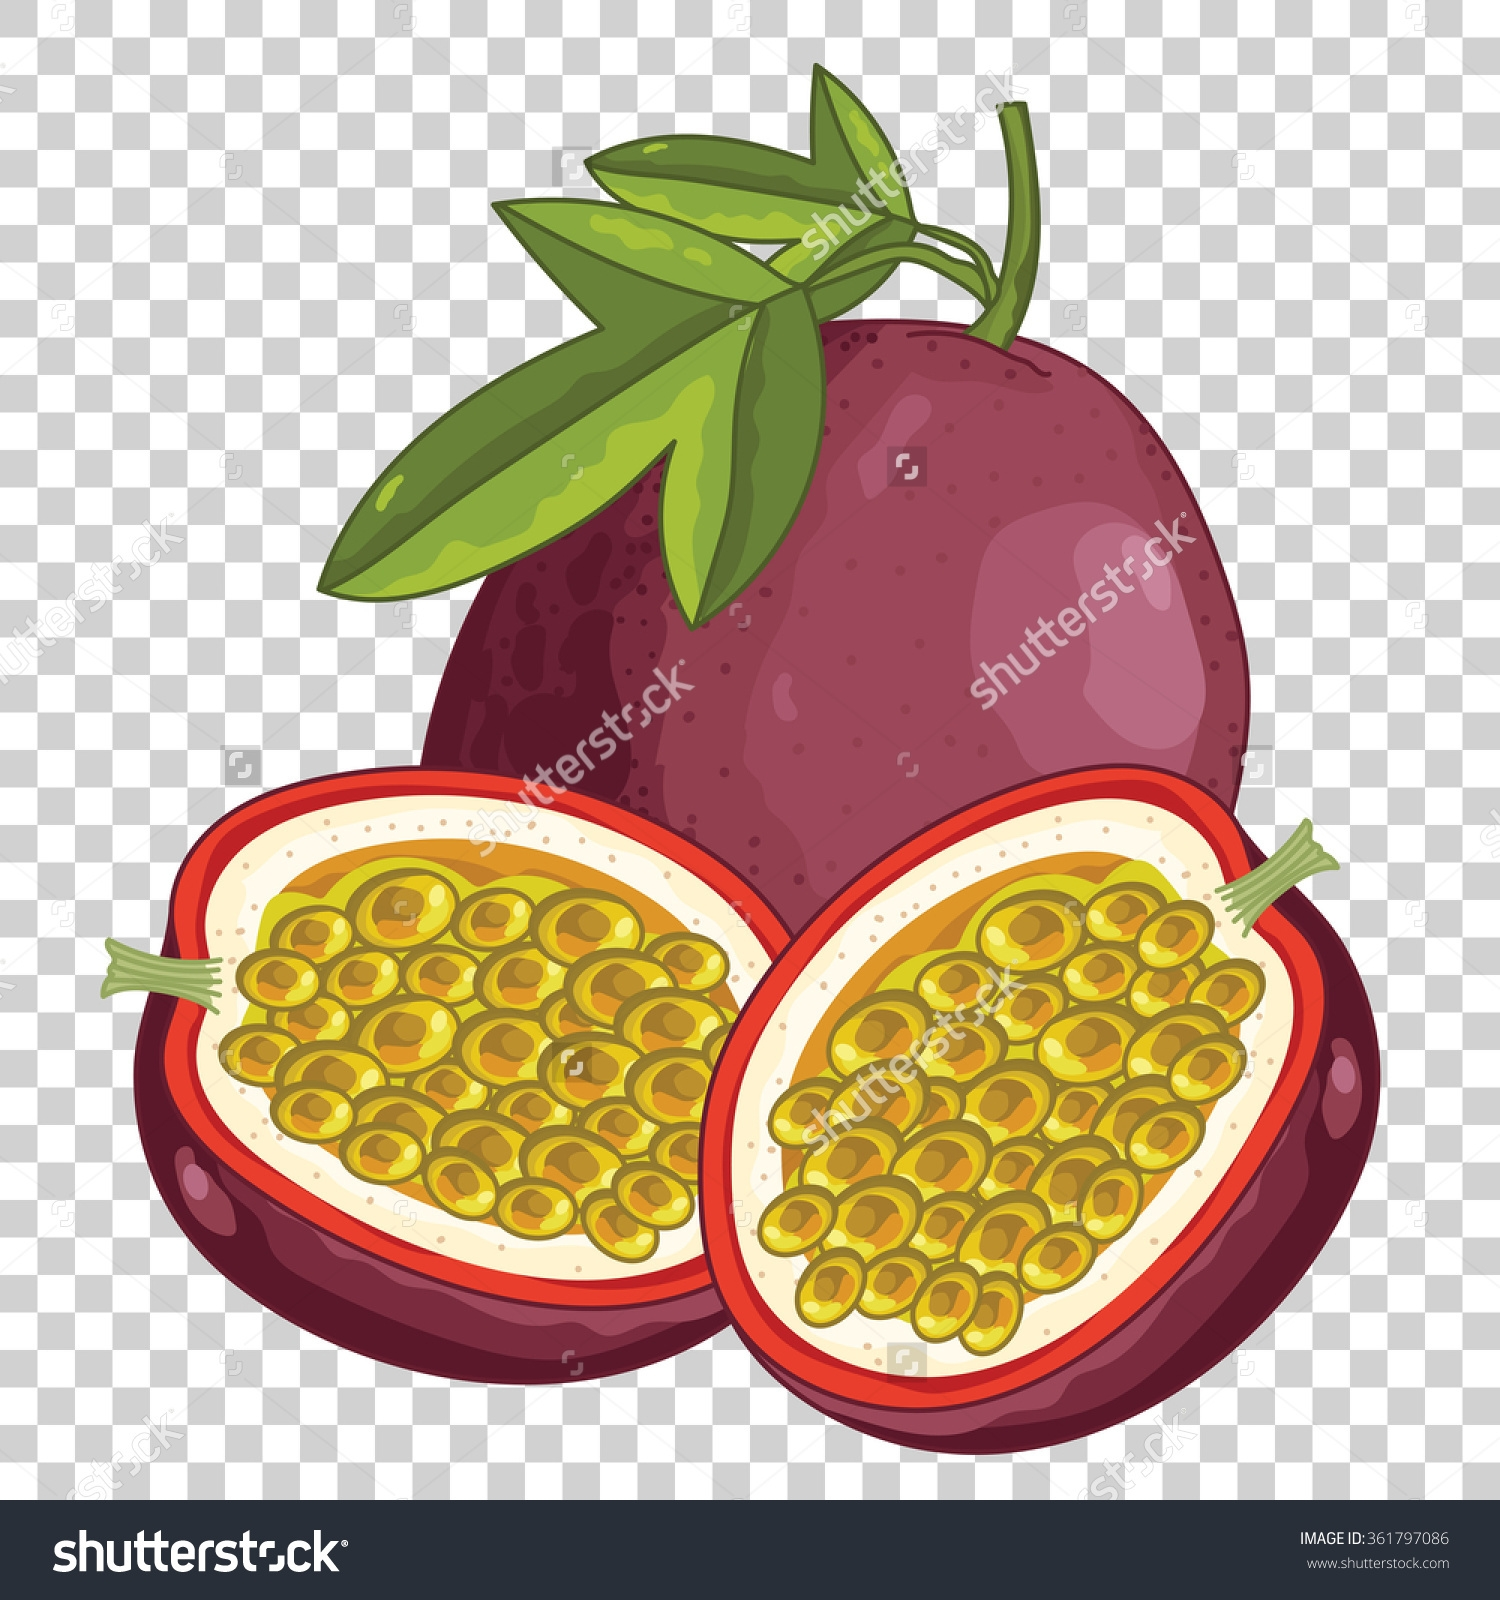 Passion Fruit Clipart.